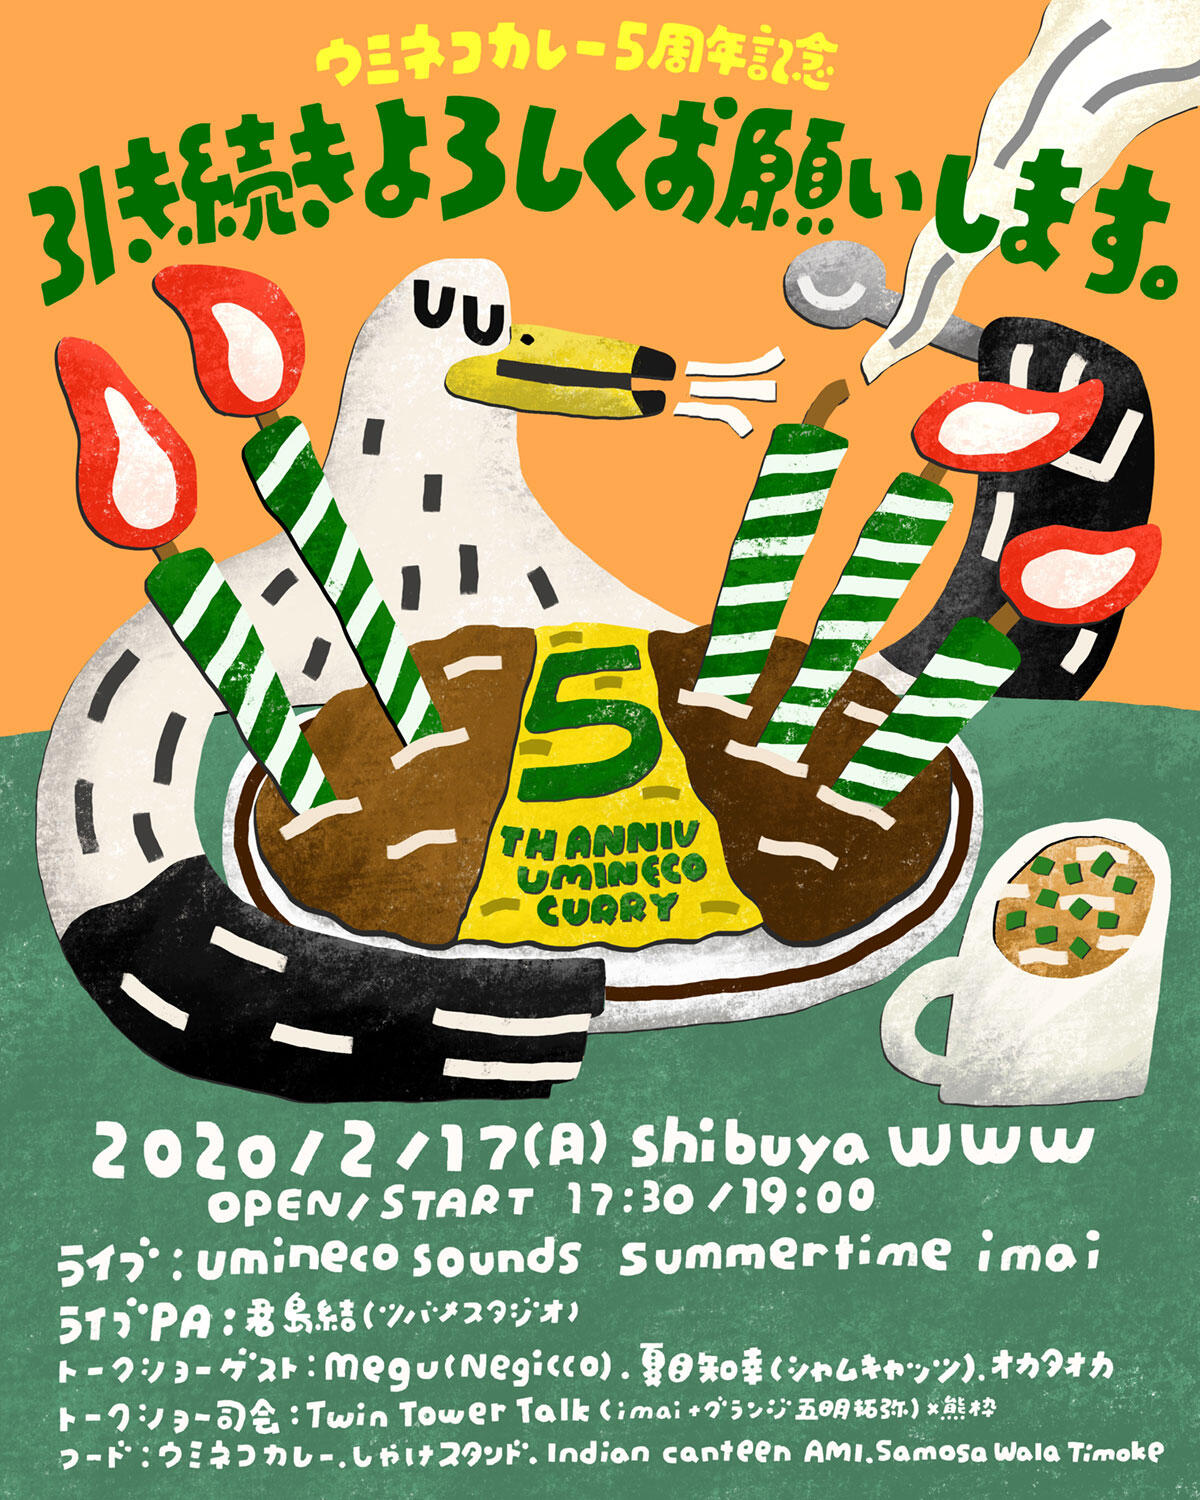 uminecosounds / summertime / imai /  and more